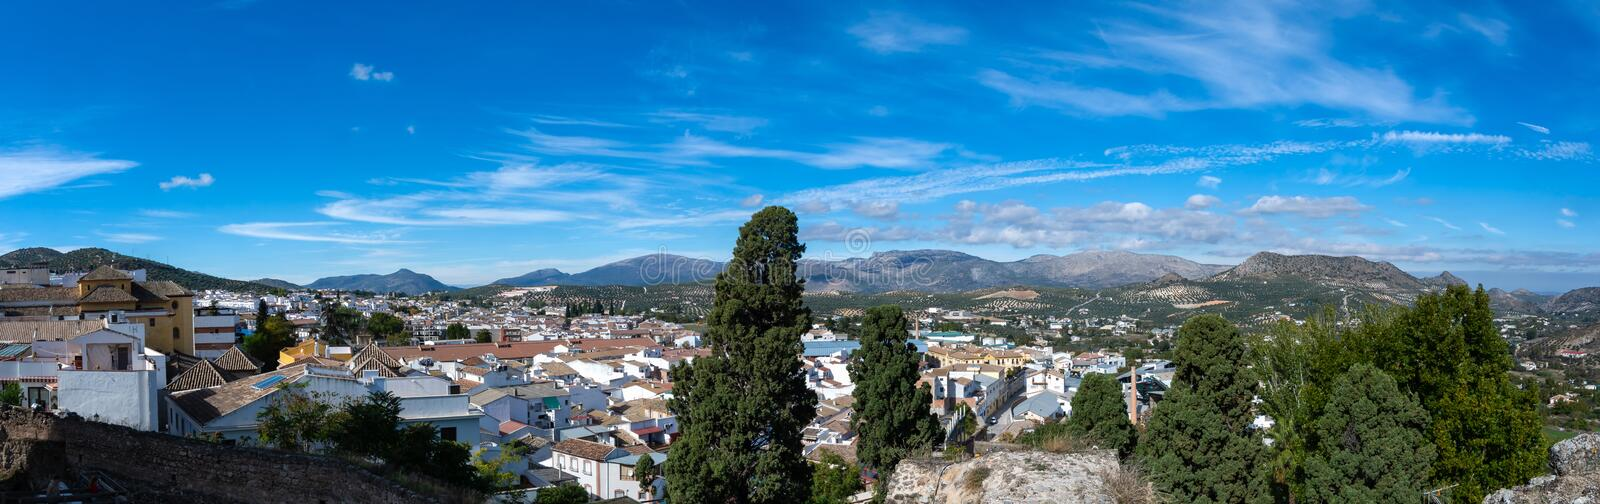 Panorama of the city of Priego de Cordoba in Spain royalty free stock image